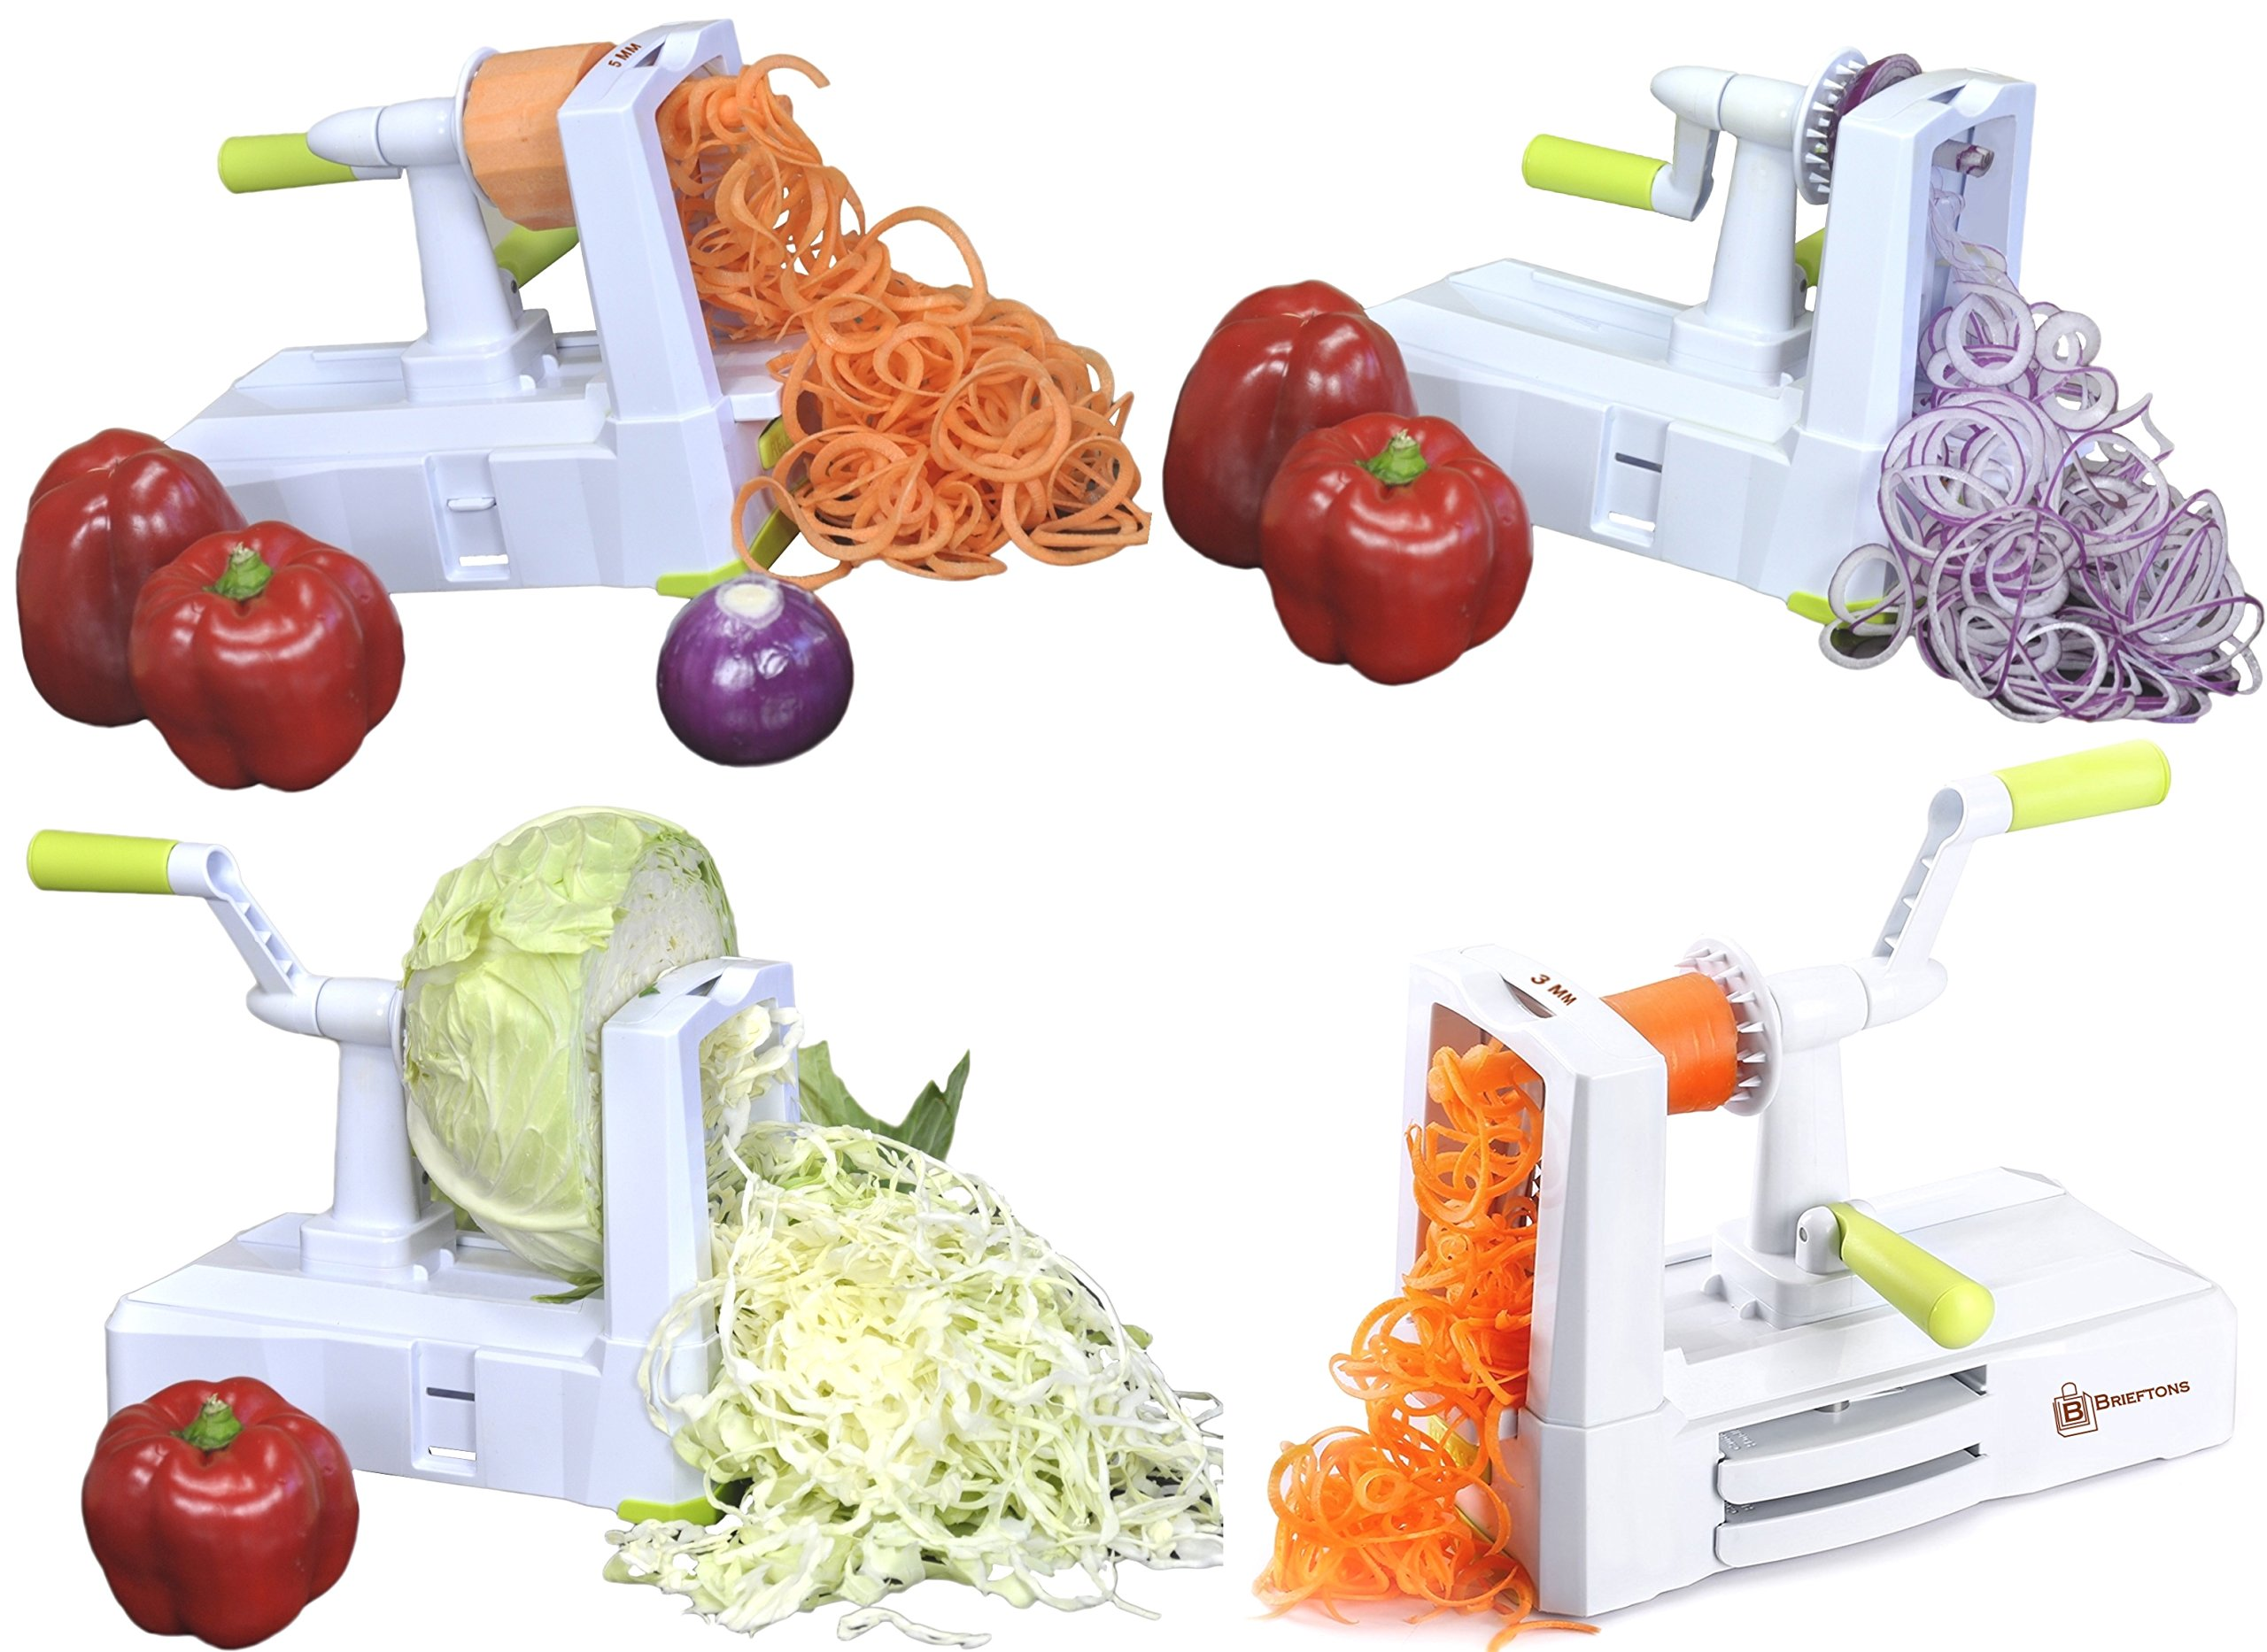 Brieftons 5-Blade Spiralizer (BR-5B-02): Strongest-and-Heaviest Duty Vegetable Spiral Slicer, Best Veggie Pasta Spaghetti Maker for Low Carb/Paleo/Gluten-Free, With Extra Blade Caddy & 4 Recipe Ebooks by Brieftons (Image #4)